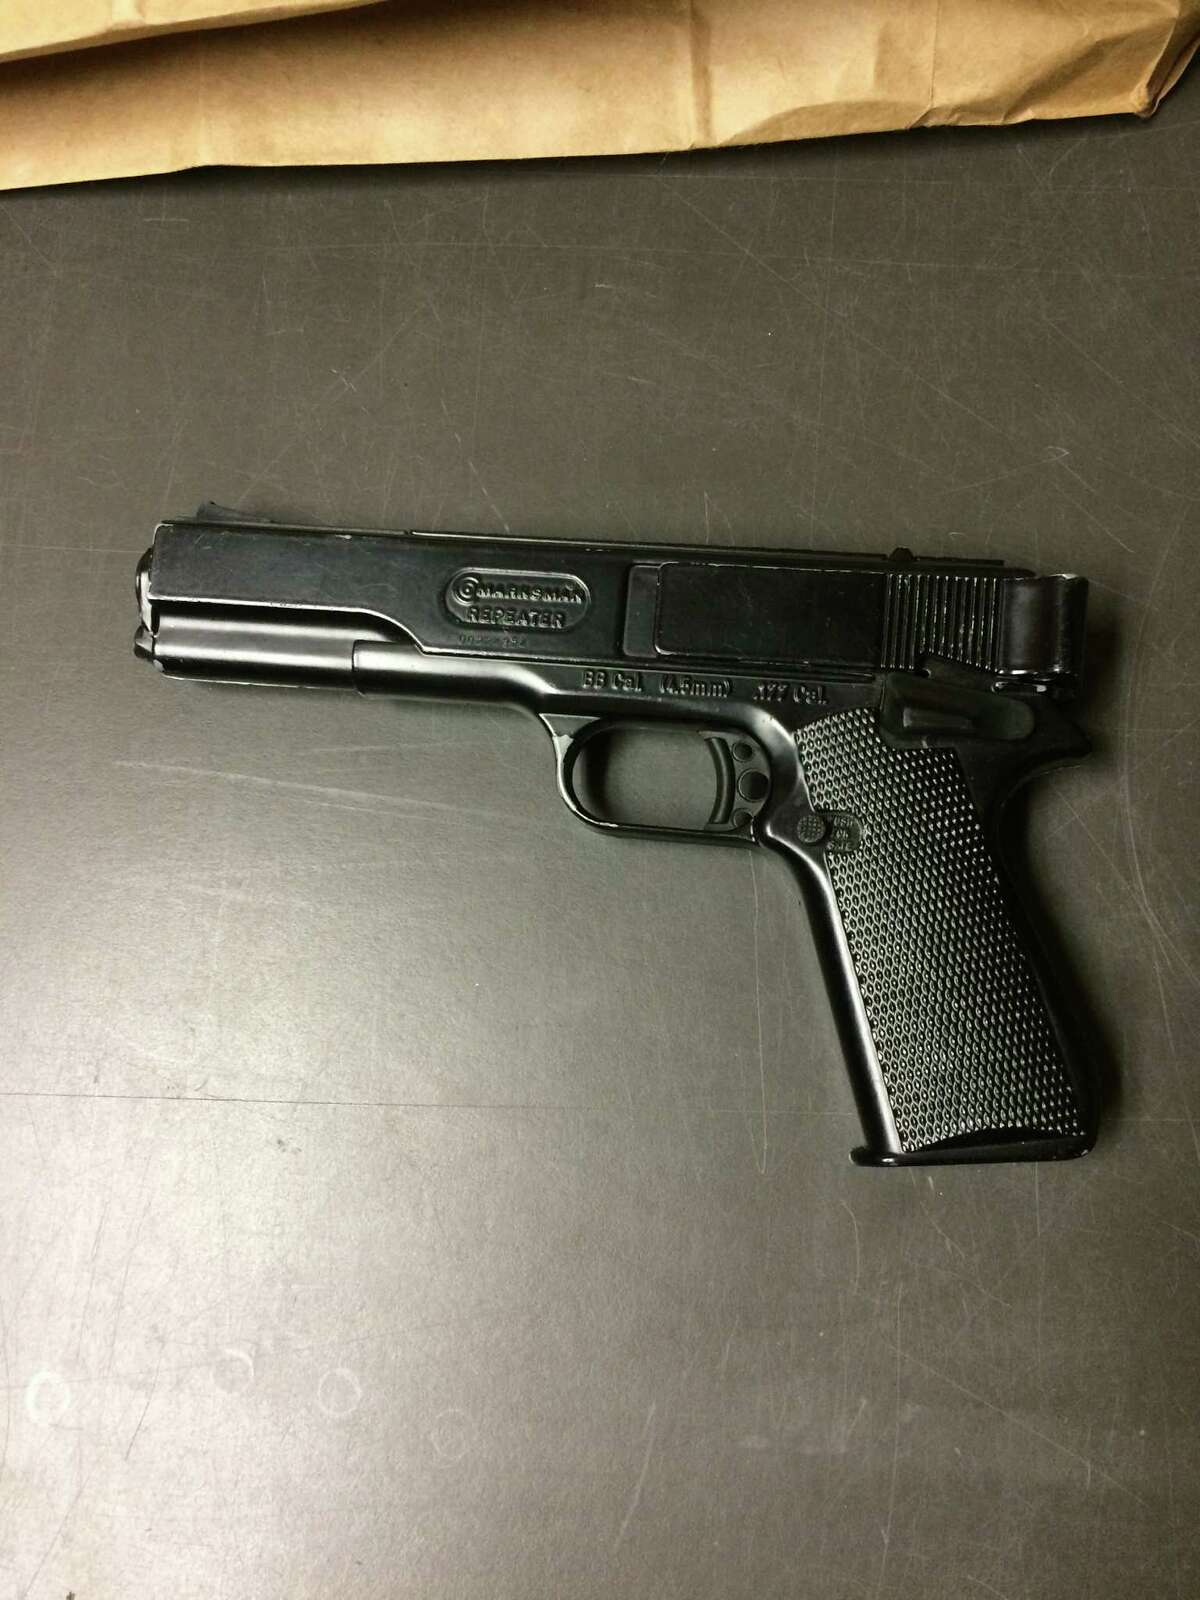 The BB gun made to look like a real handgun that caused a Stamford police officer to fire at Elias Garcia-Ramirez, 29, during a traffic stop on Thursday, Jan. 21, 2016.